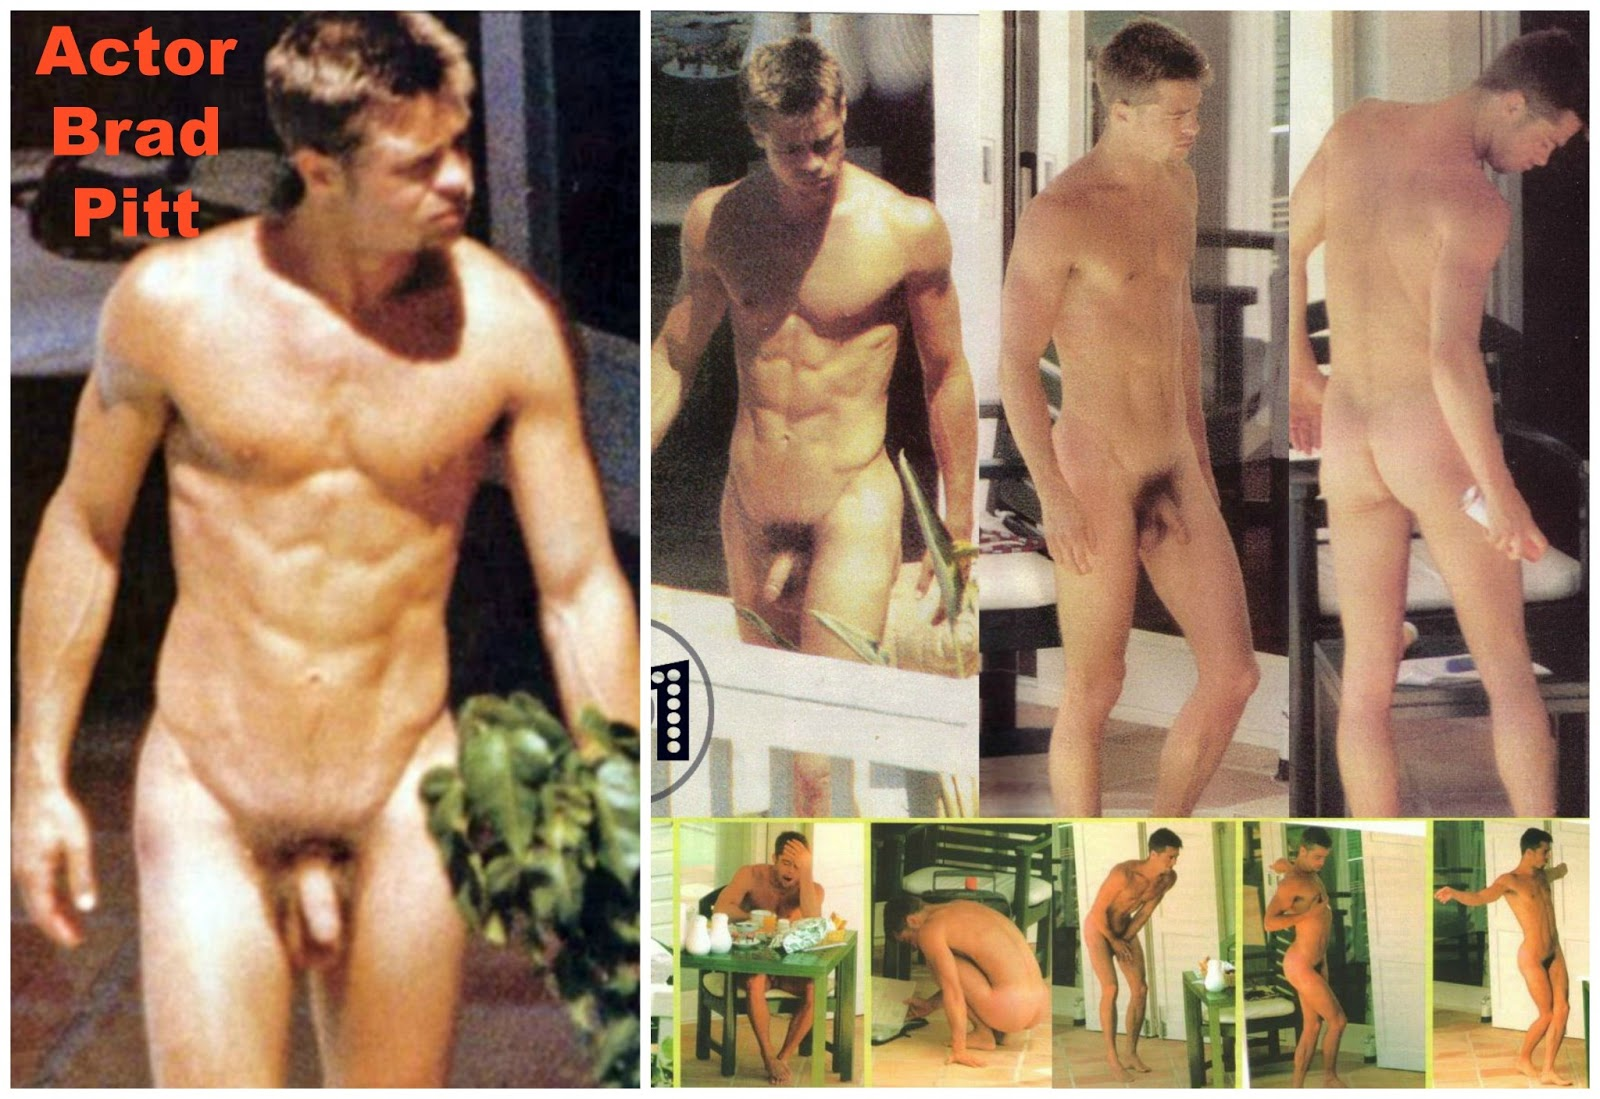 What's brad pitt's sexiest role